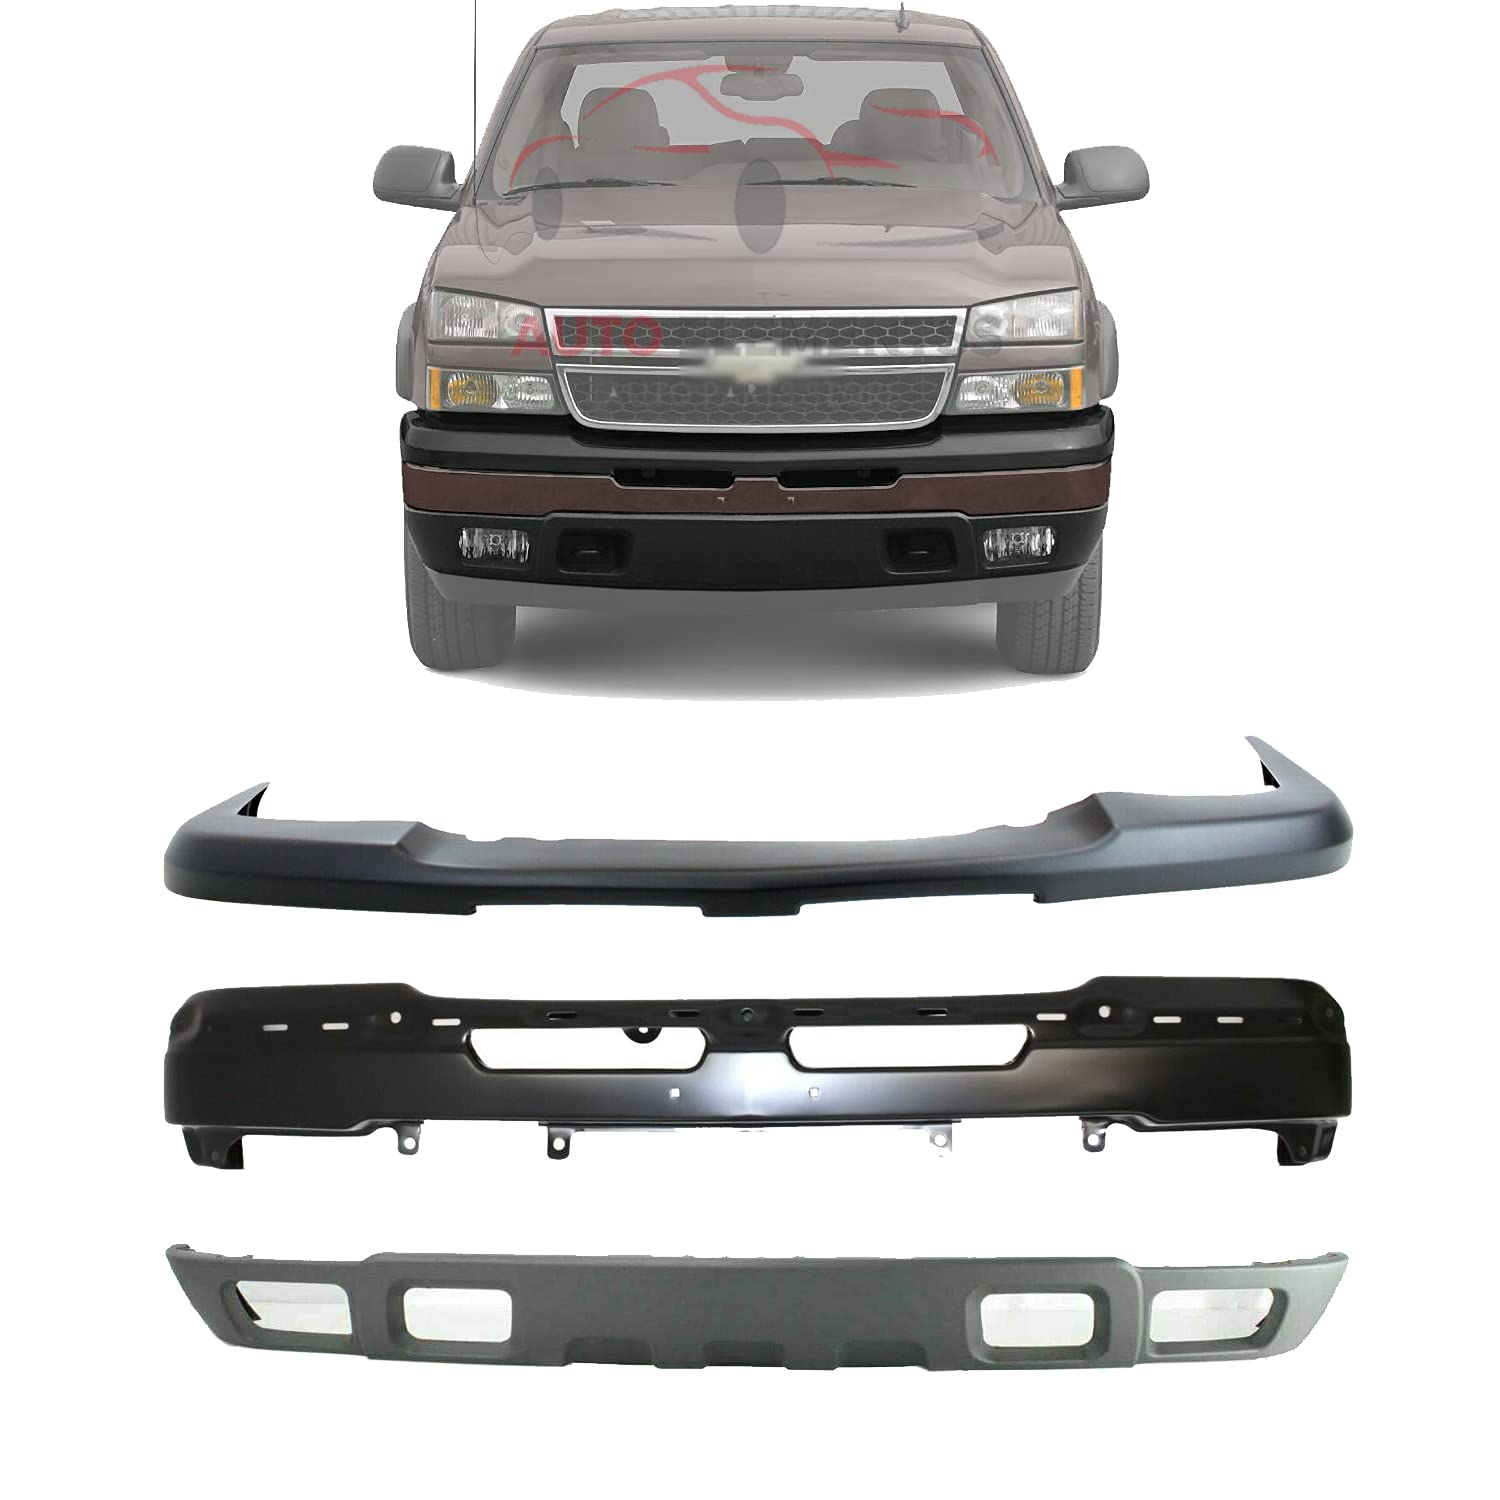 New Front Bumper Paint To Match Steel Upper Cover Lower Valance Textured For 2003 2006 Chevrolet Silverado 1500 2002 2006 Avalanche Direct Replacement 15139805 89025748 10397999 Buy Online In India At Desertcart 197618426